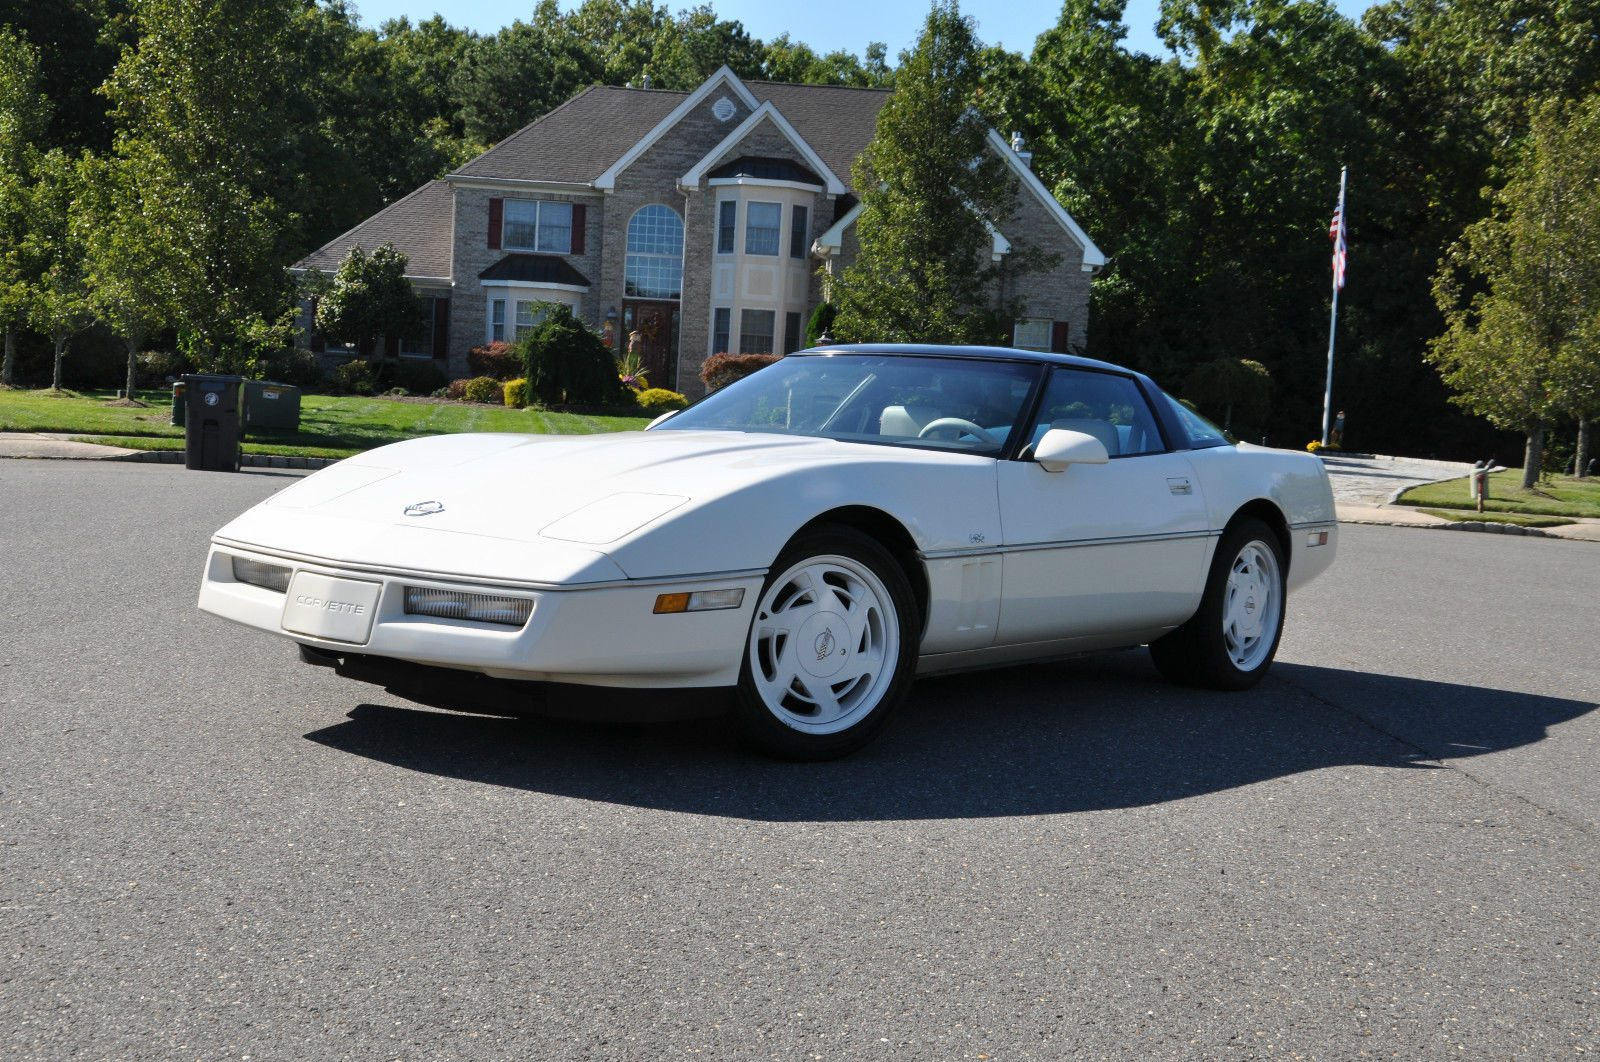 1988 c4 corvette ultimate guide overview specs vin info rh corvsport com 88 corvette service manual 78 Corvette